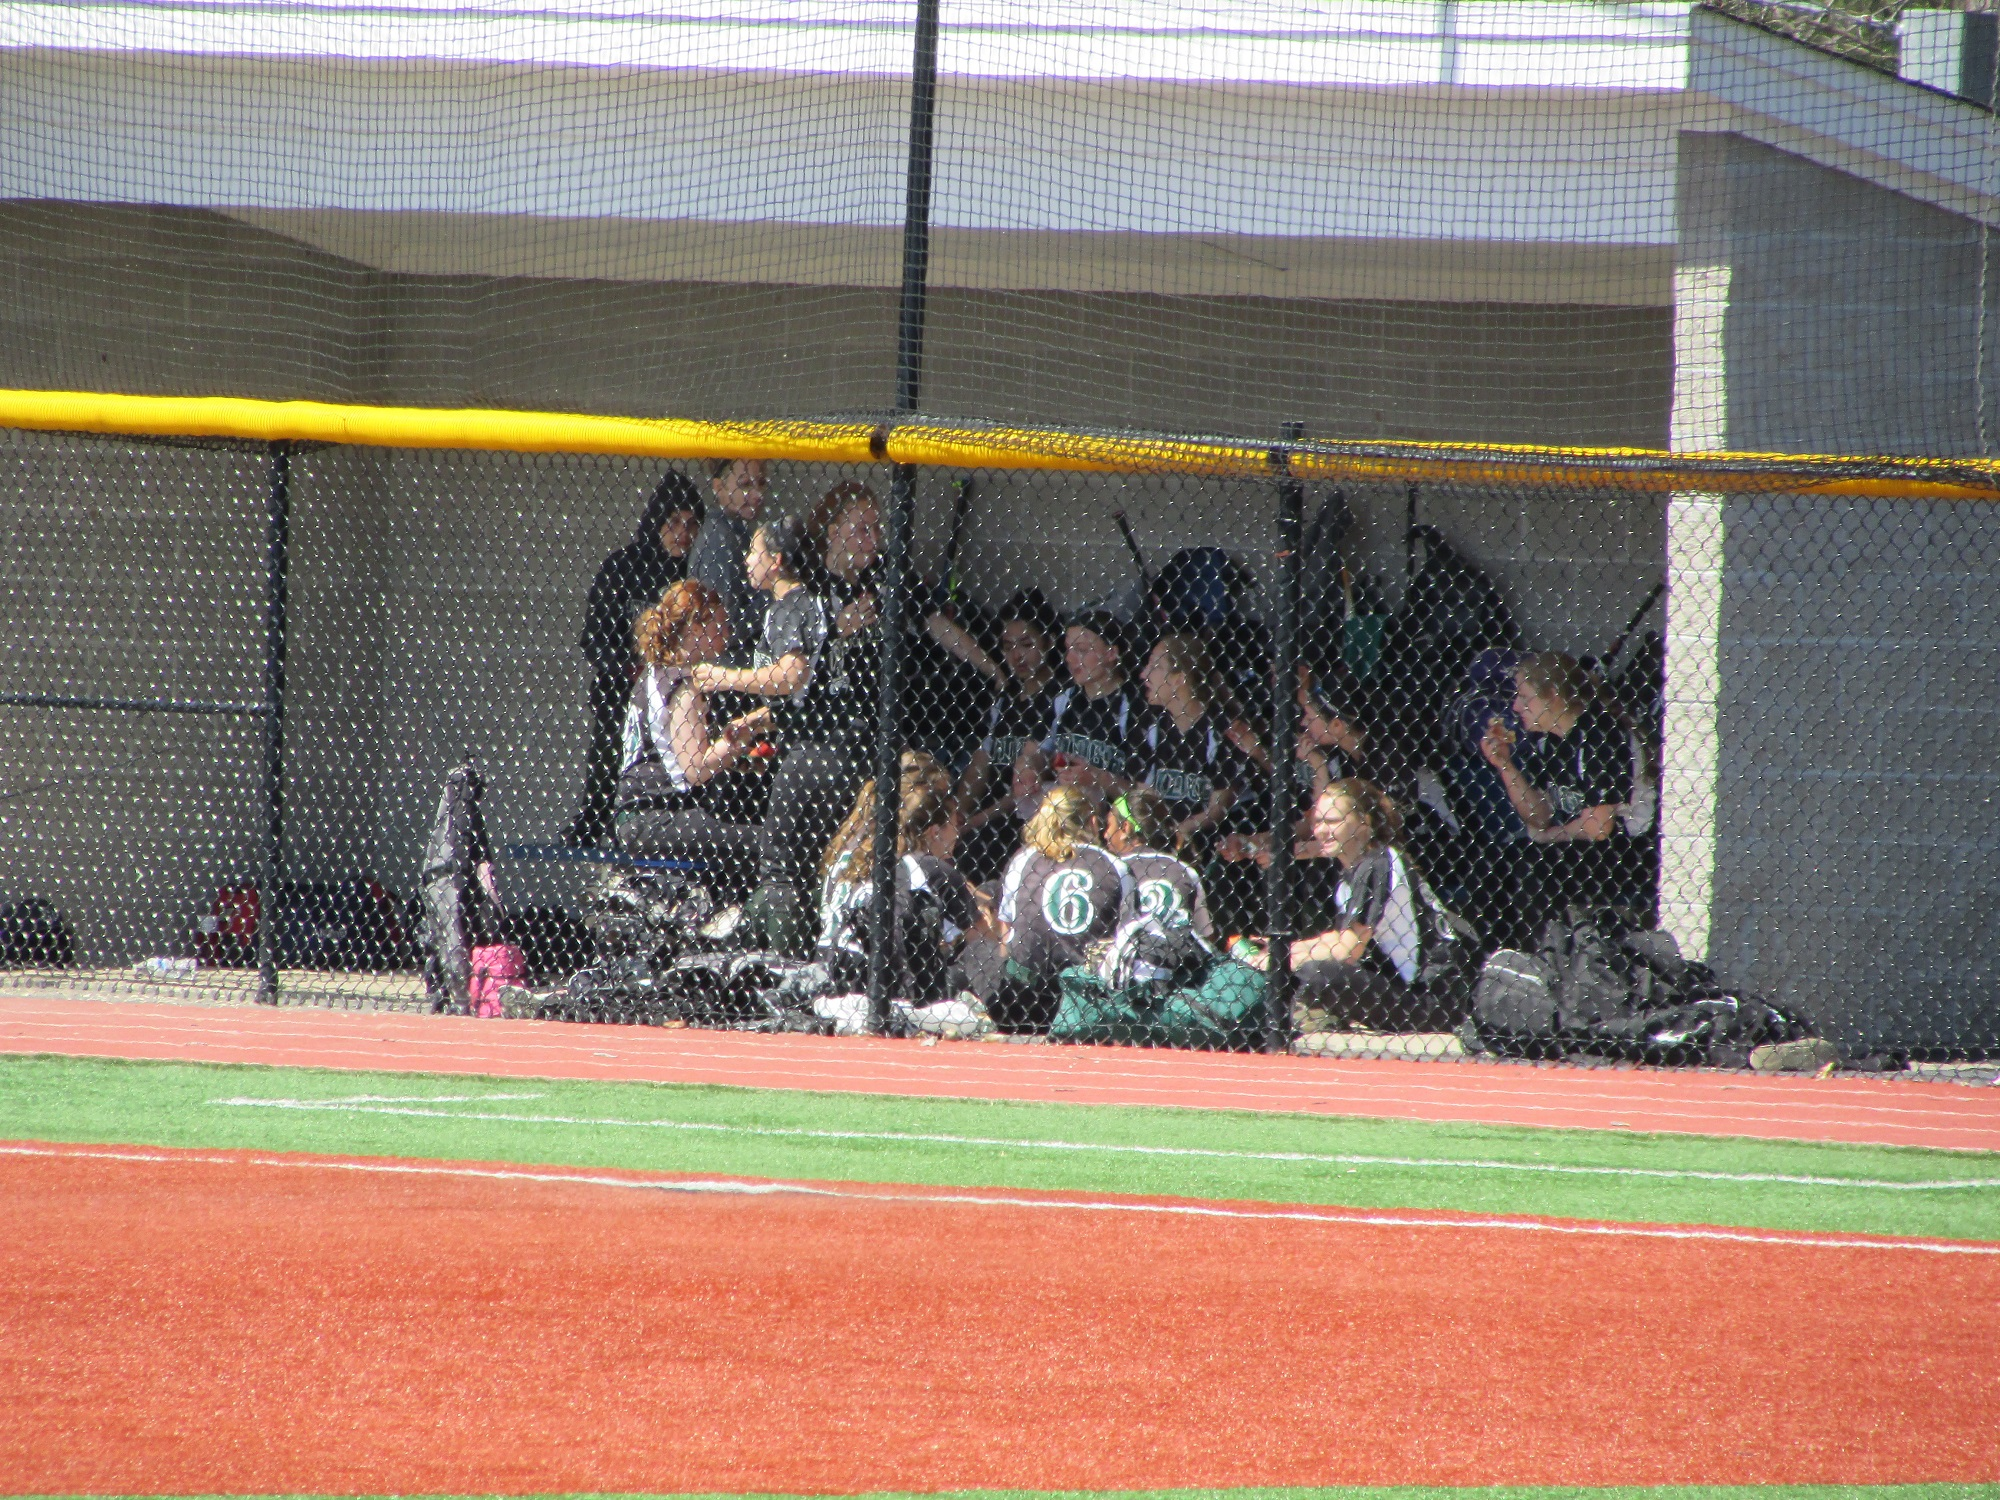 a64e5976c9531e095c76_ridge_softball_team.jpg